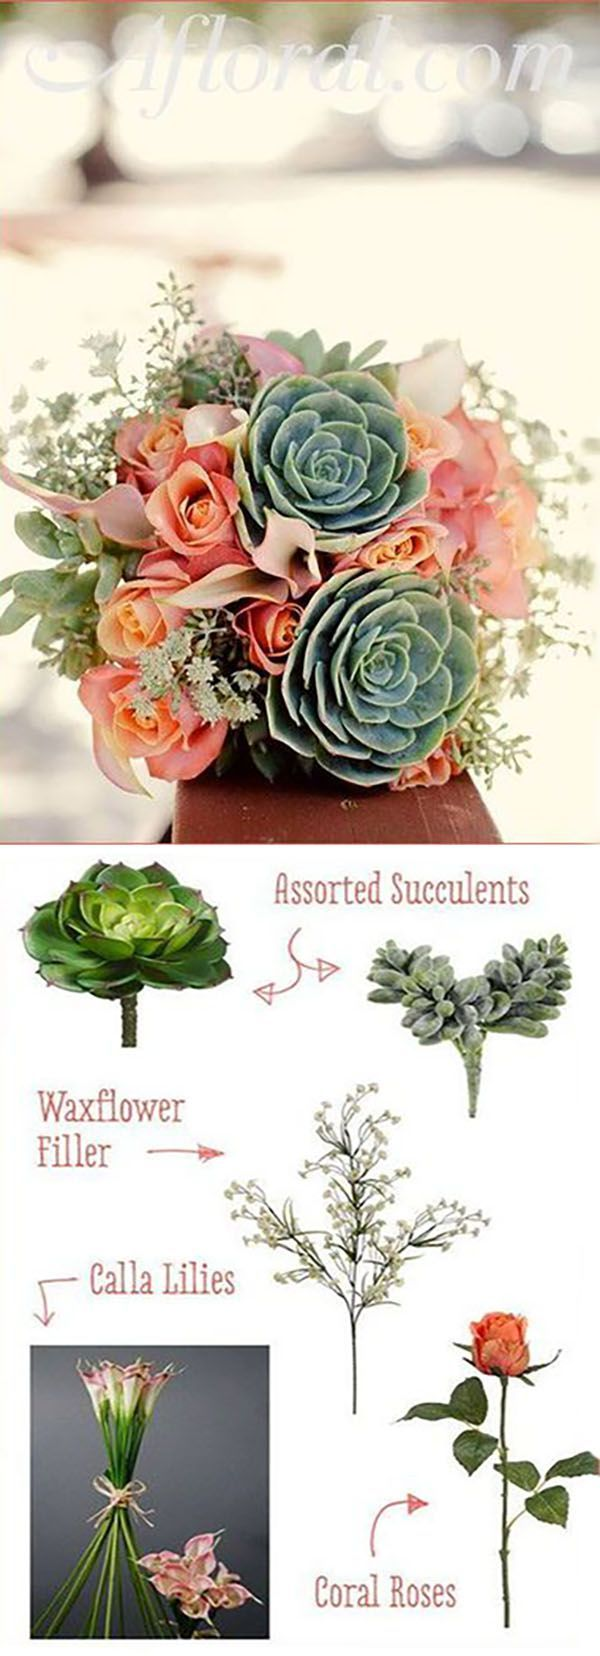 cheap wedding flowers best photos | Pinterest | Cheap wedding ...